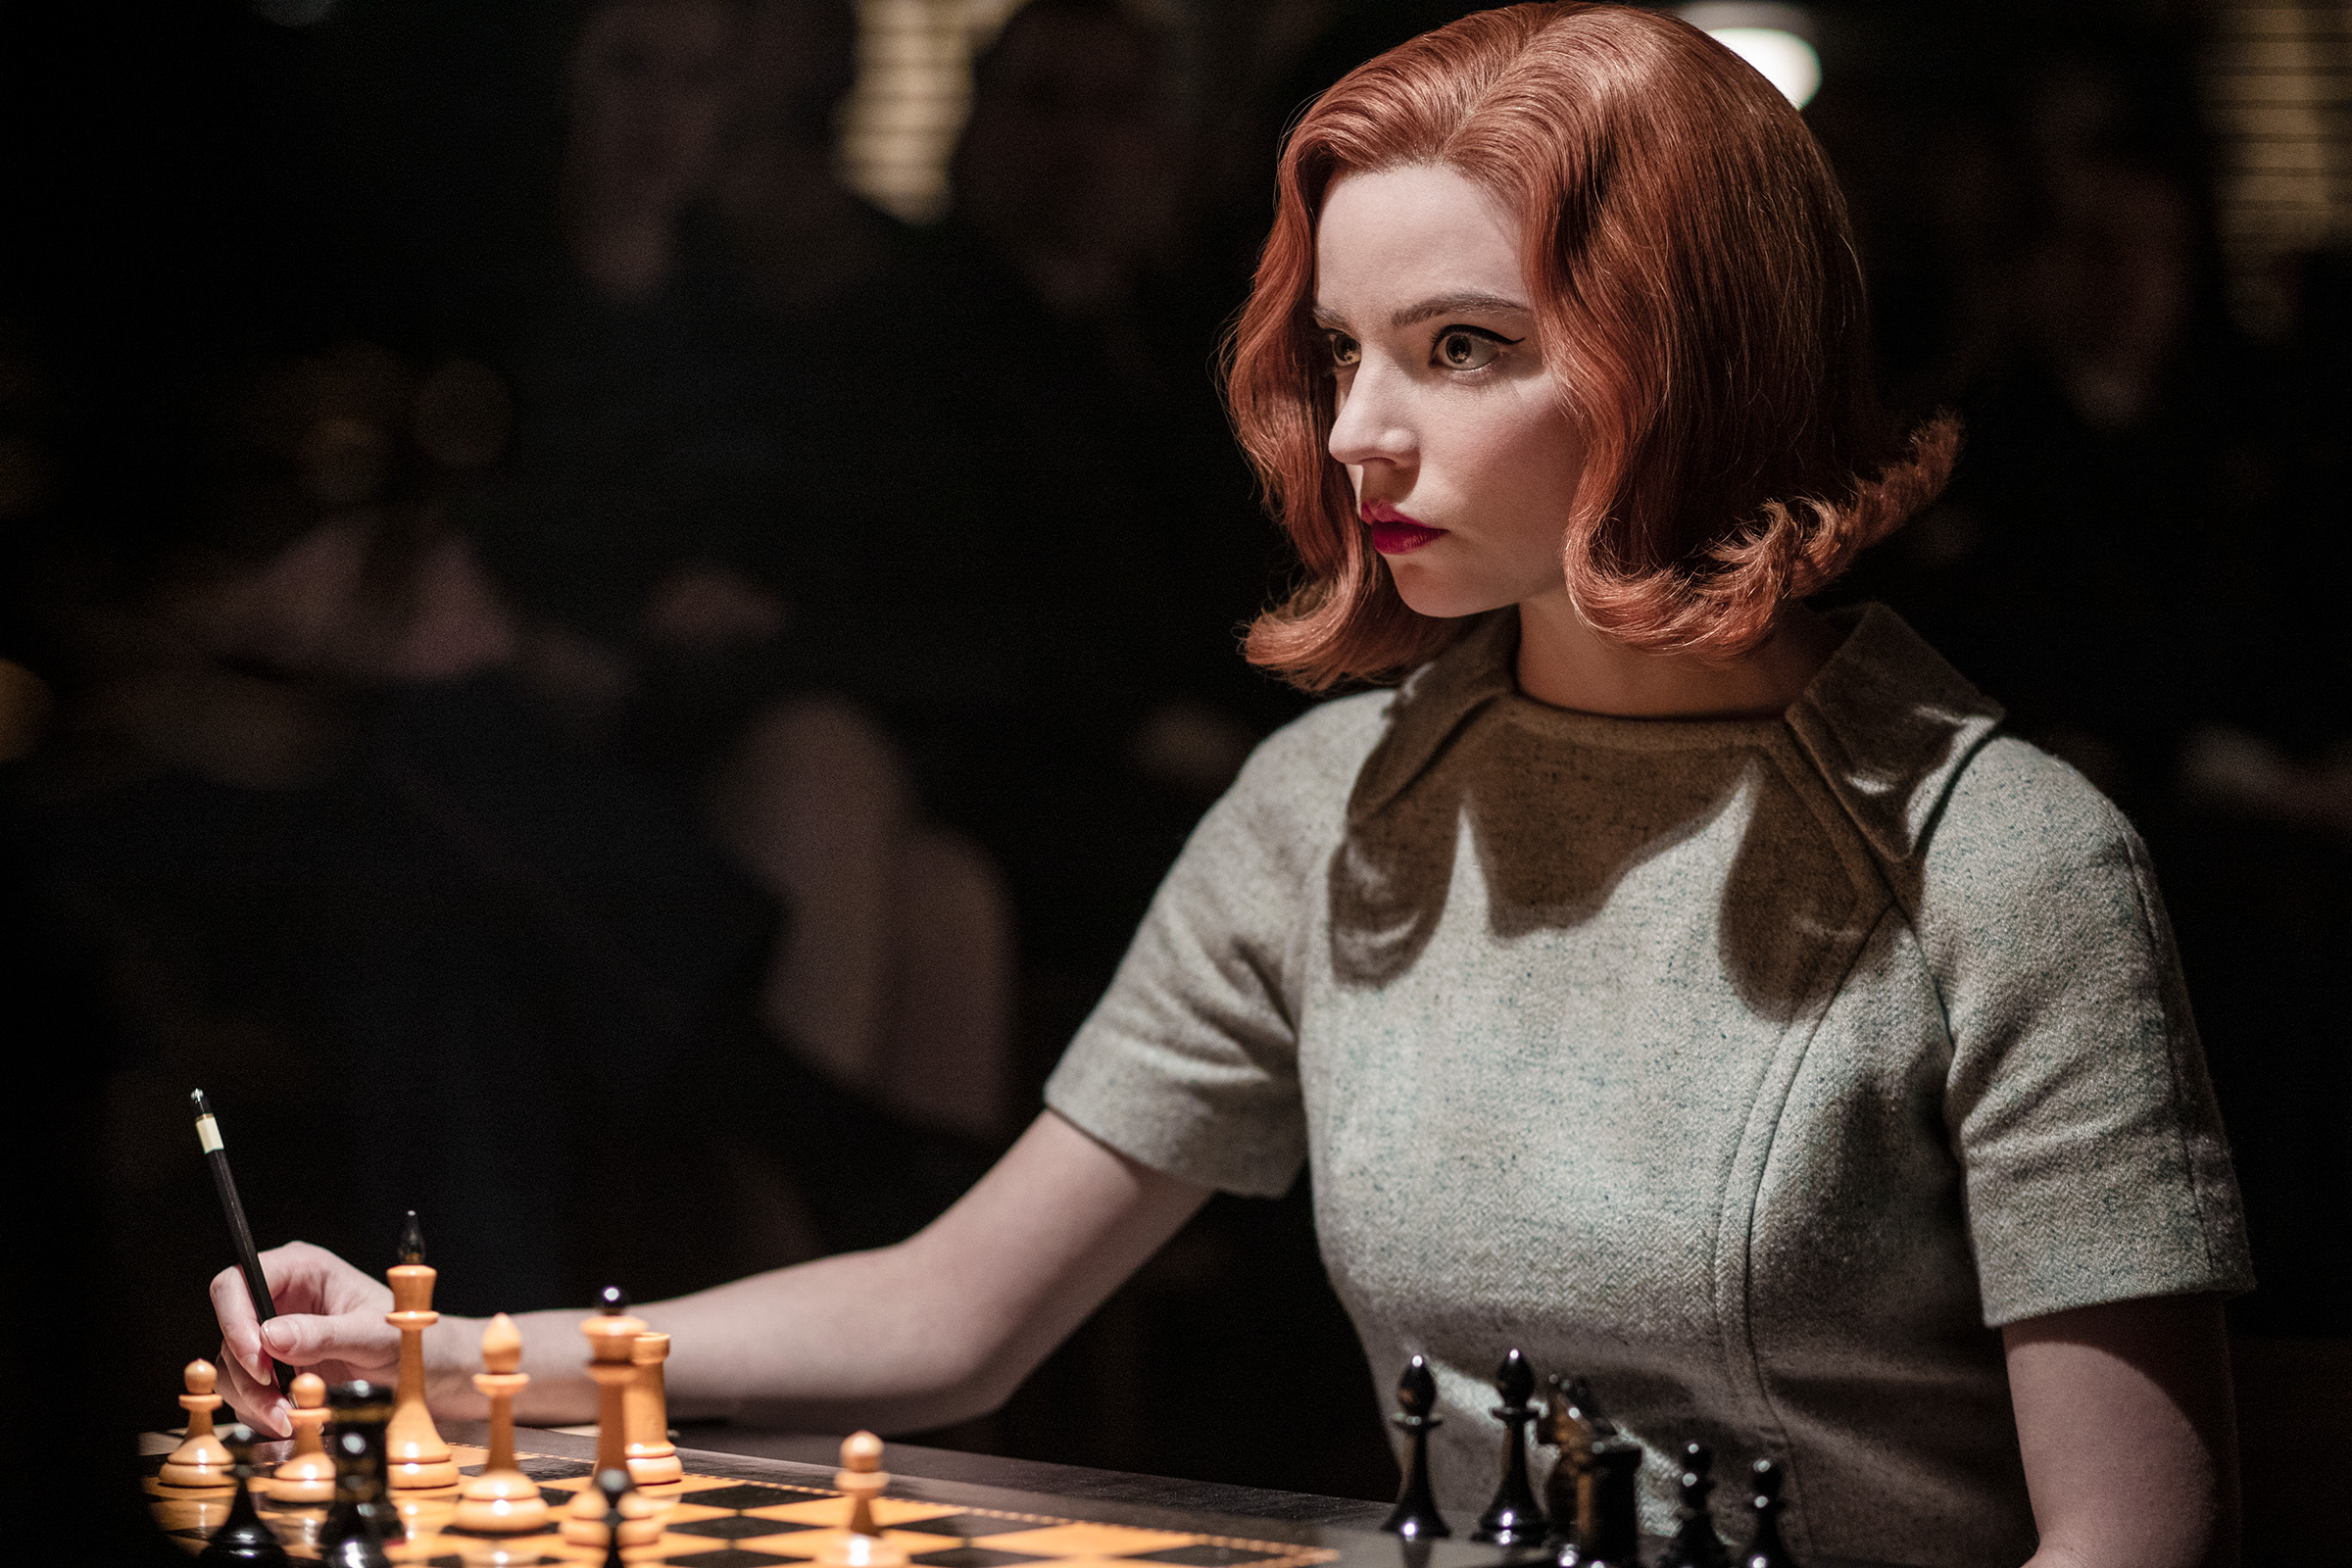 A still from  The Queen's Gambit,  which debuted on Netflix in 2020.